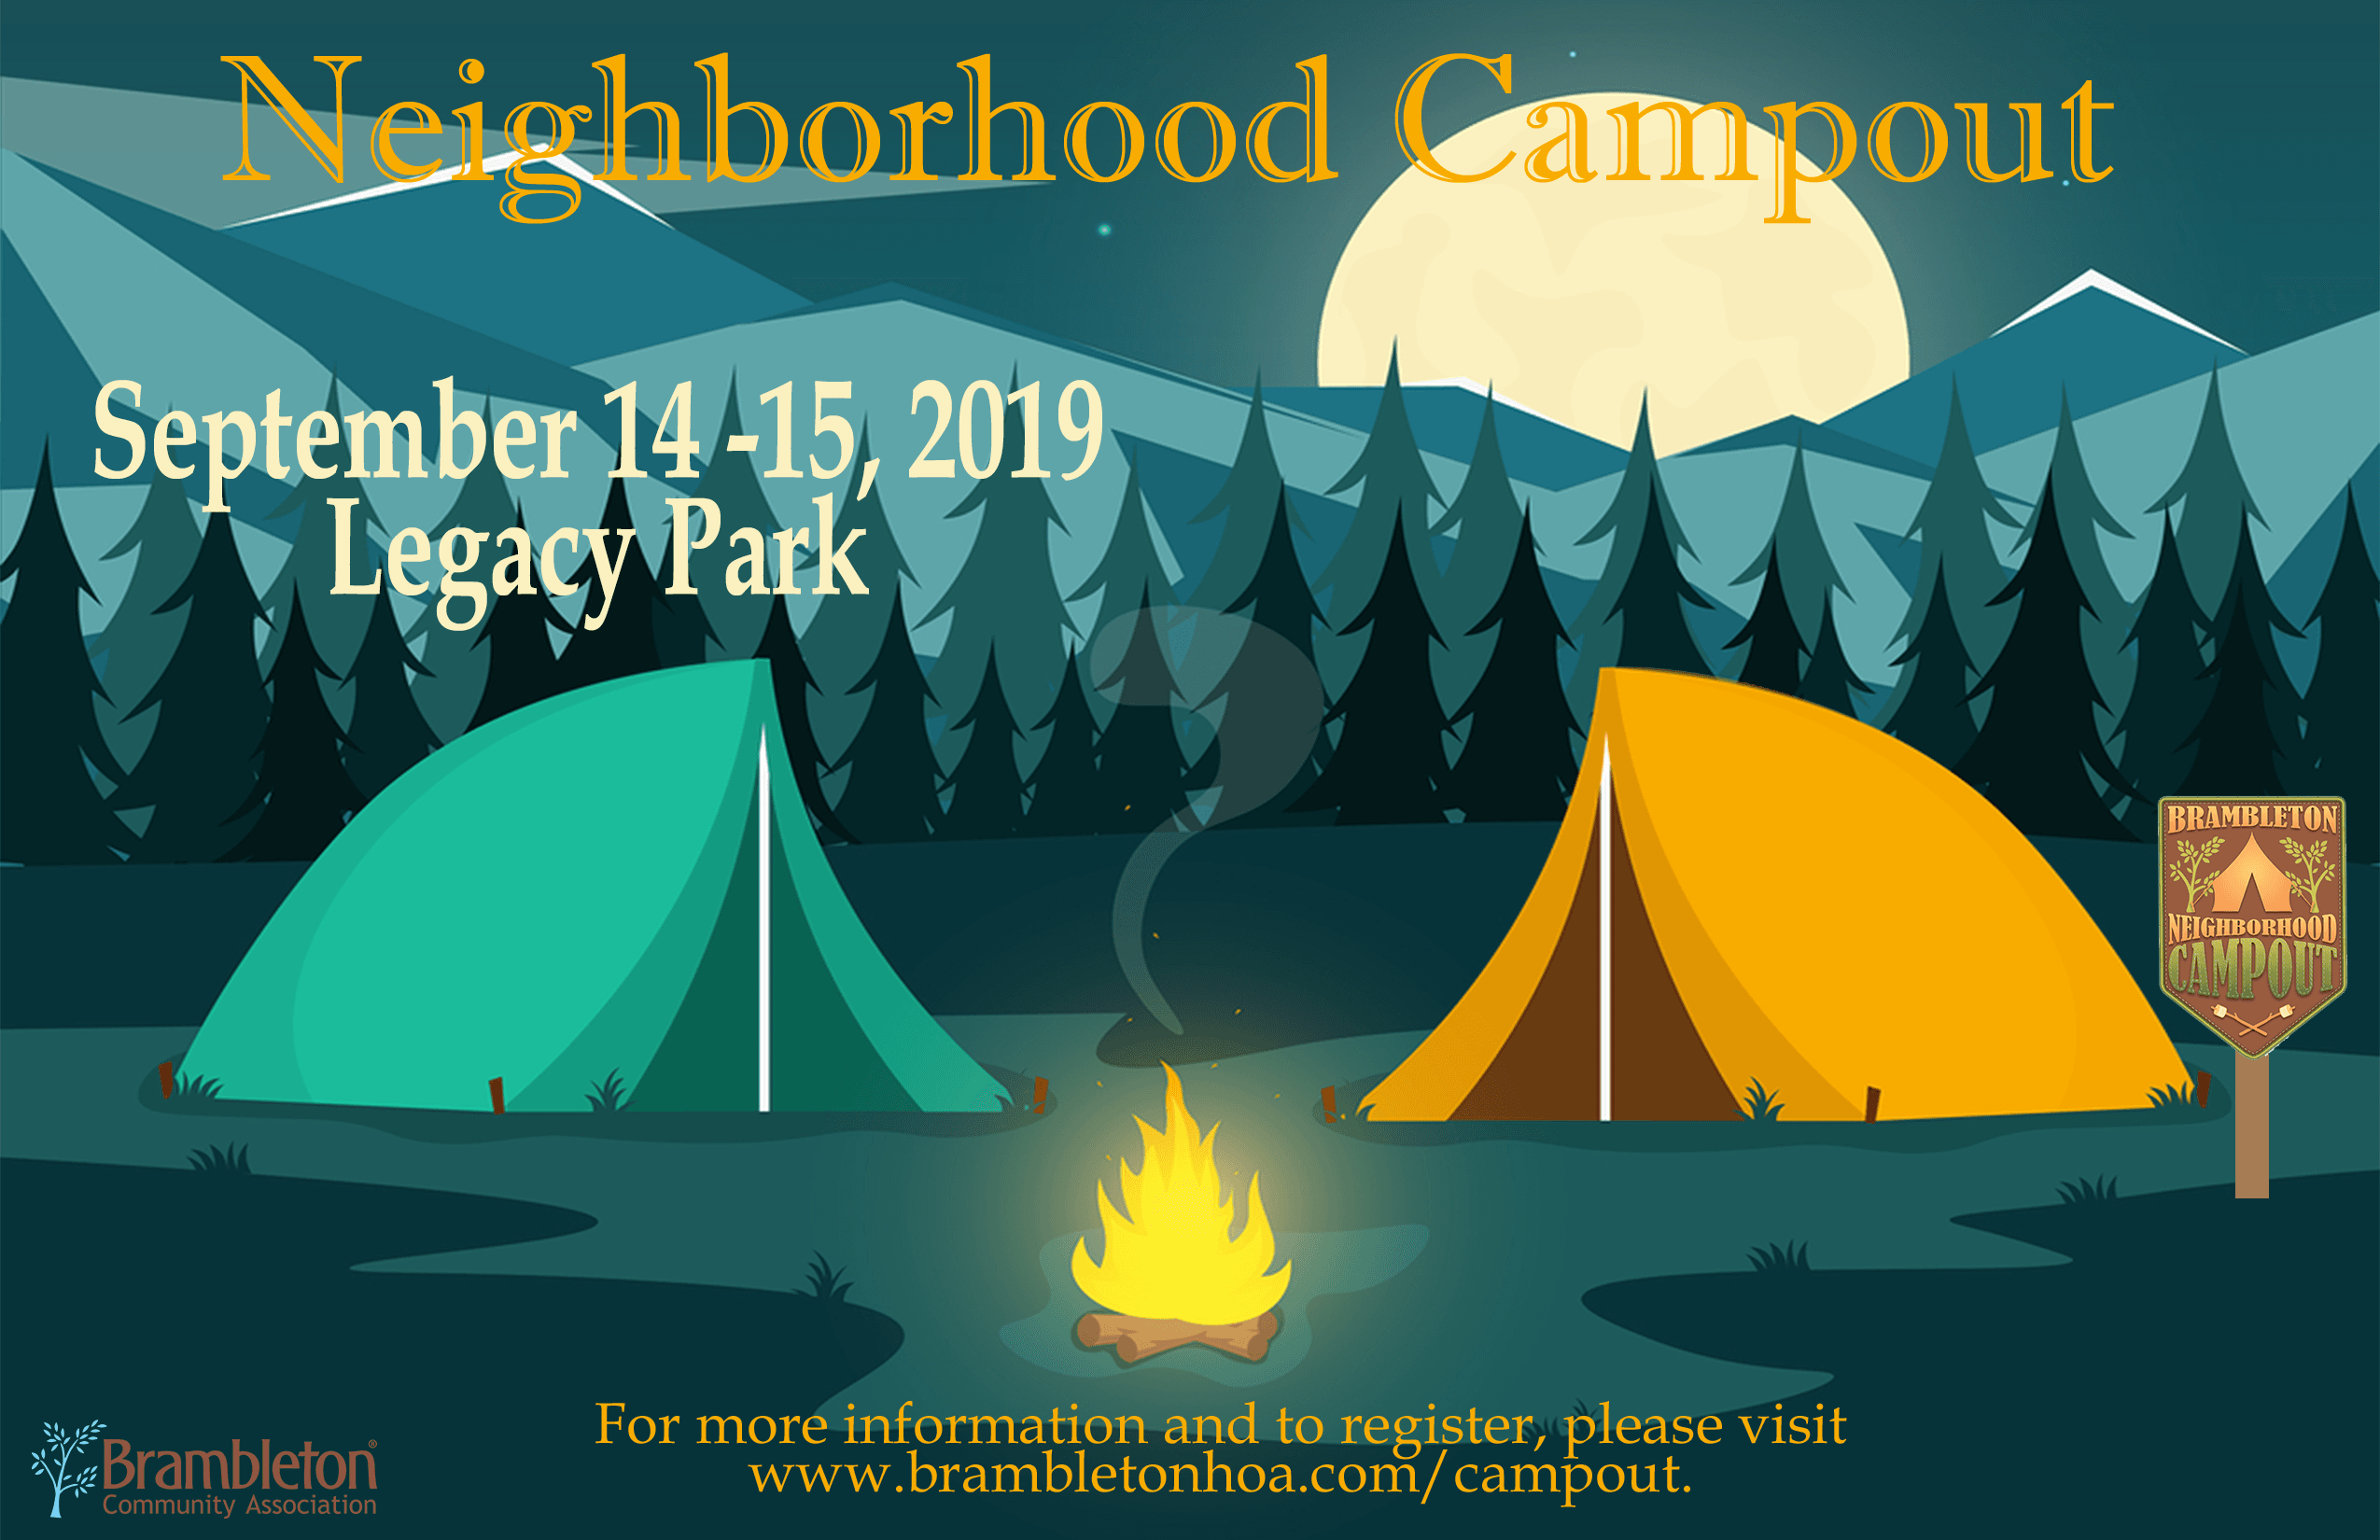 Neighborhood Campout 2019